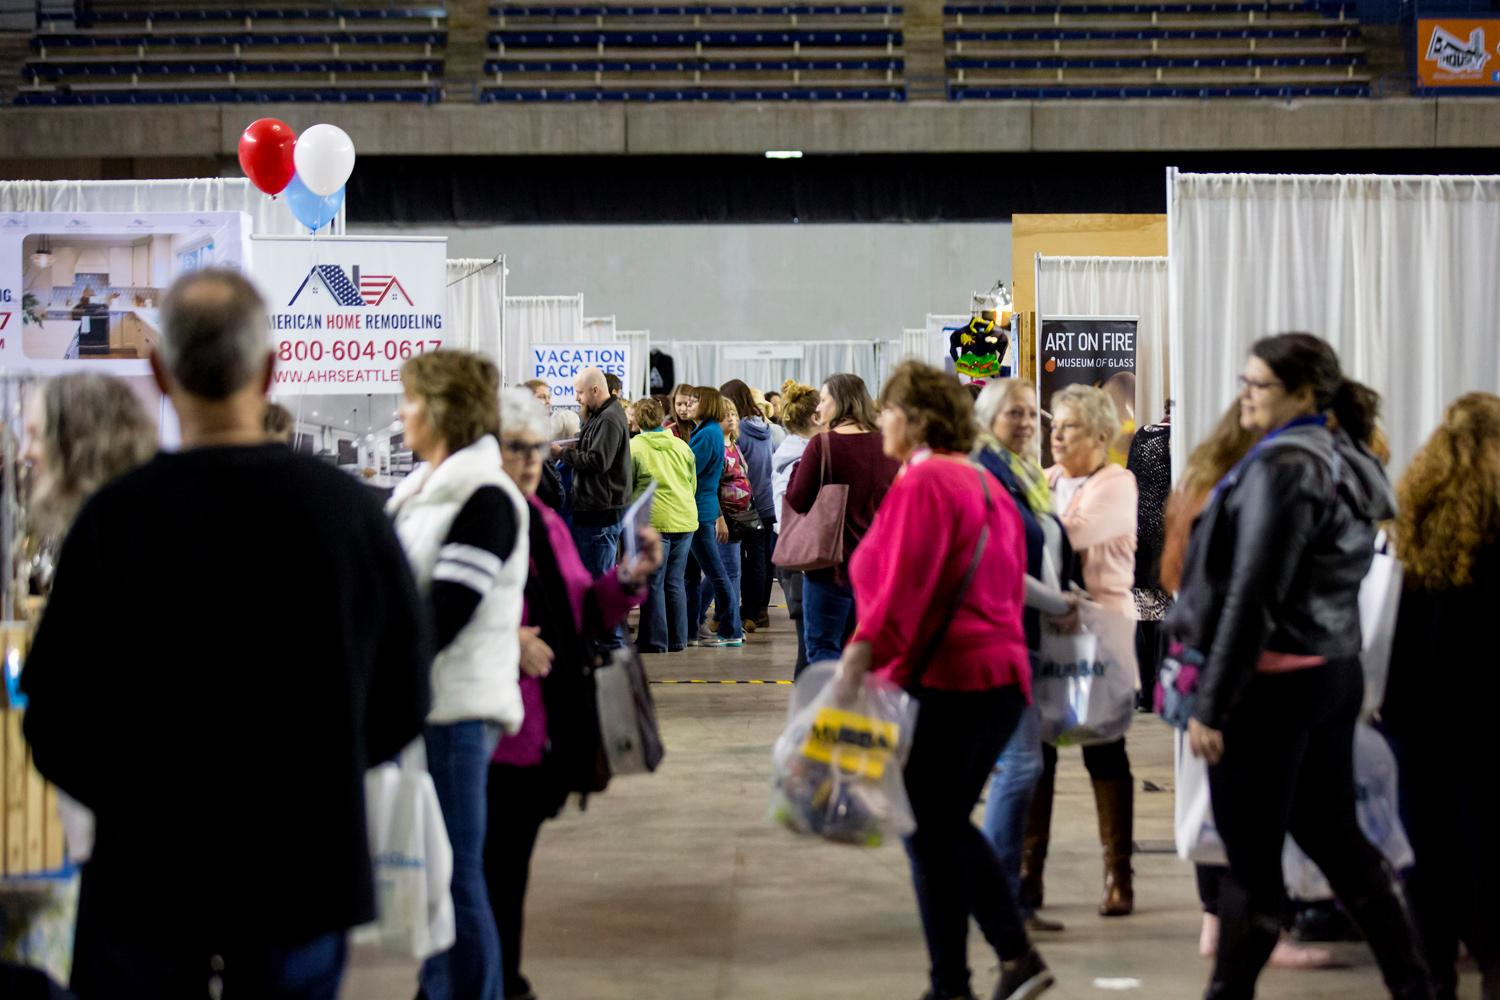 It's Saturday and that means it's the first day of the So Northwest Women's Show at the Tacoma Dome!!! Hundreds of attendees are coming out for the fun, food, and to see celebrity guests like Michelle Stafford of General Hospital, Tony Dovolani and Karina Smirnoff from Dancing with the Stars, and familiar faces from the KOMO TV family. (Sy Bean / Seattle Refined)